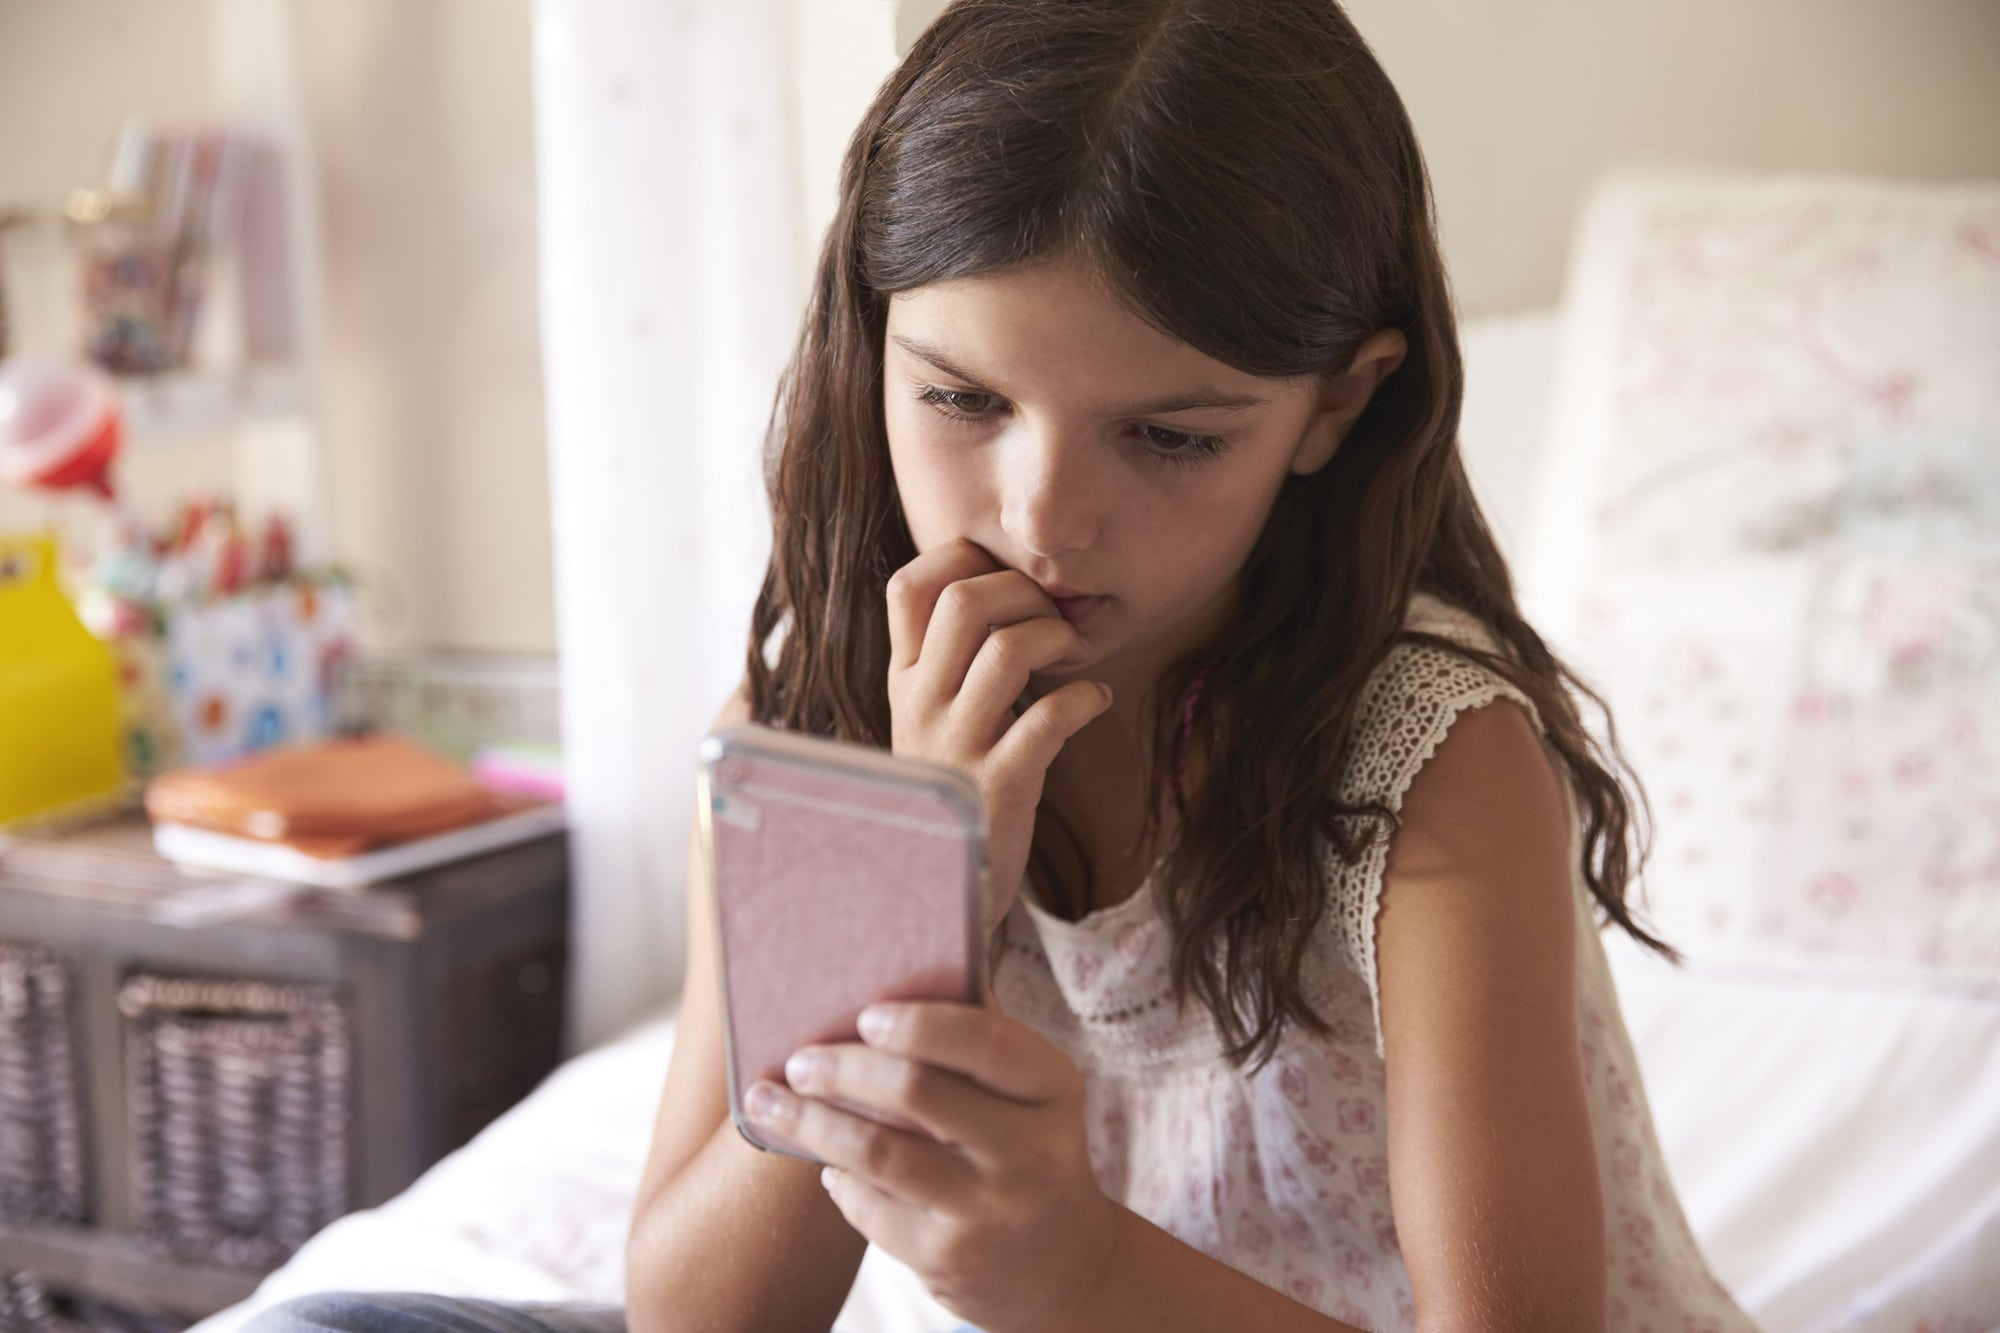 Digital Parenting Terms You Need To Know in 2020